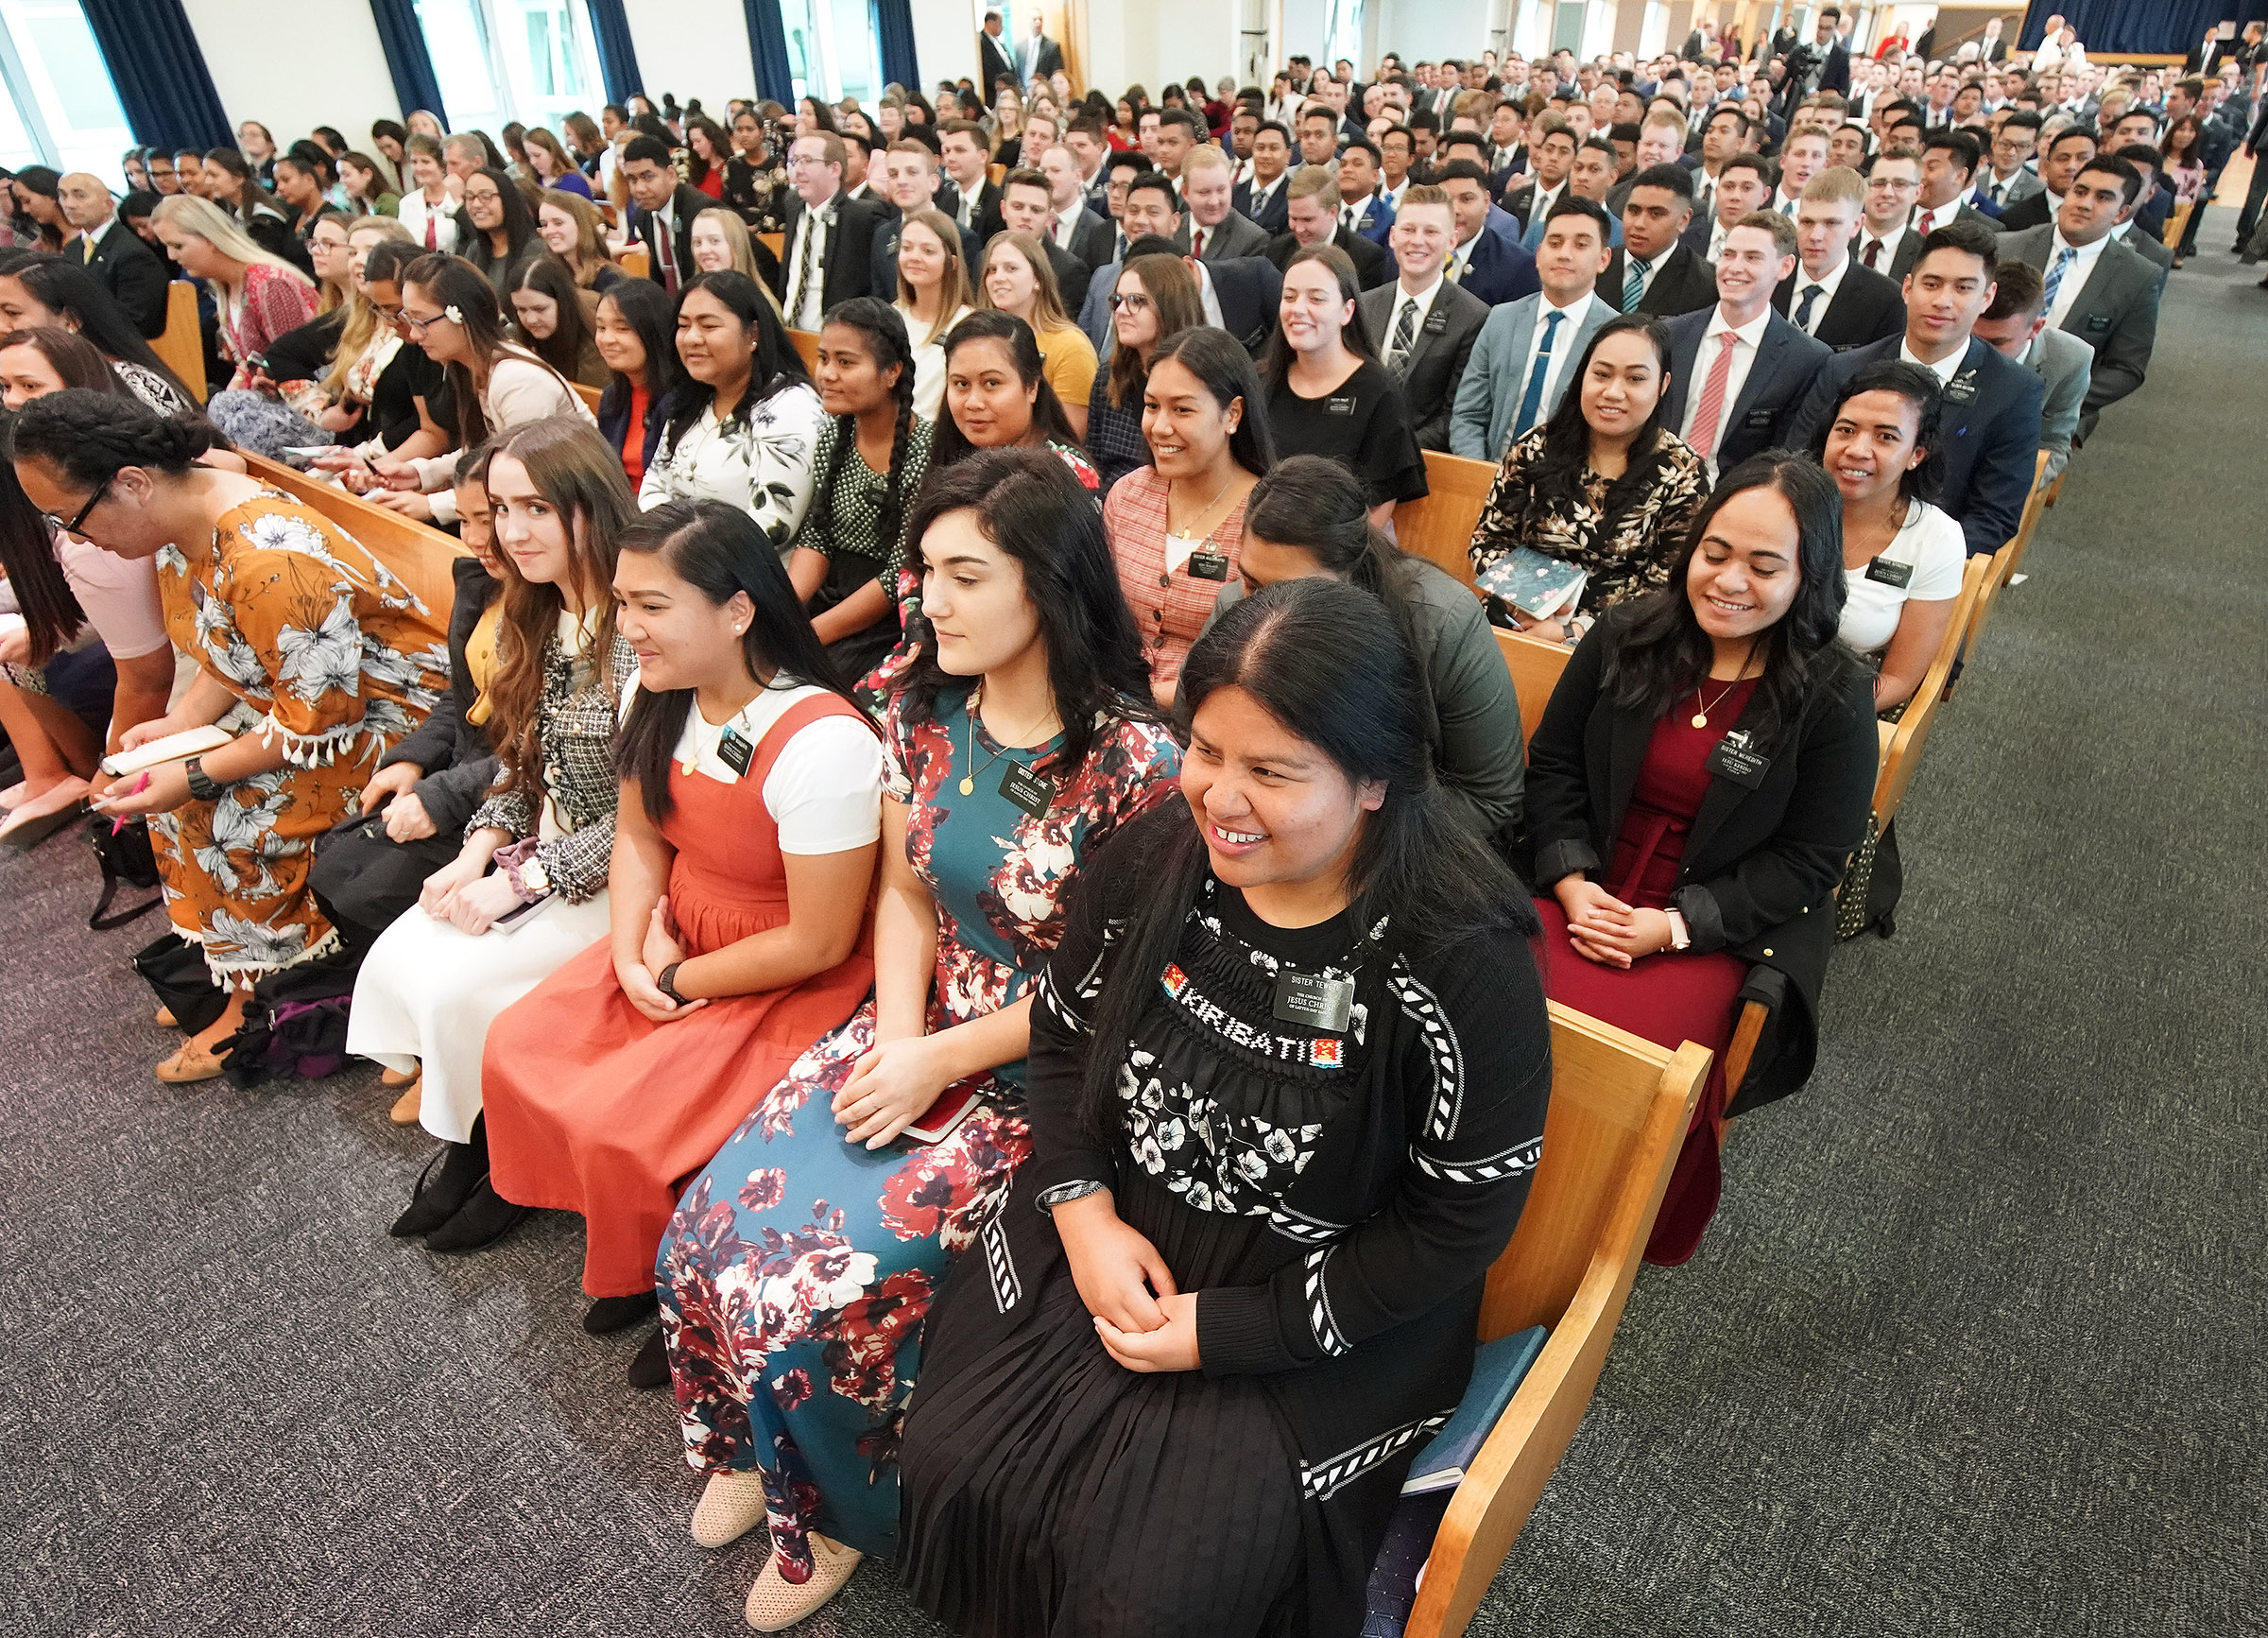 Missionaries listen to President Russell M. Nelson of The Church of Jesus Christ of Latter-day Saints in Auckland, New Zealand, on Tuesday, May 21, 2019.